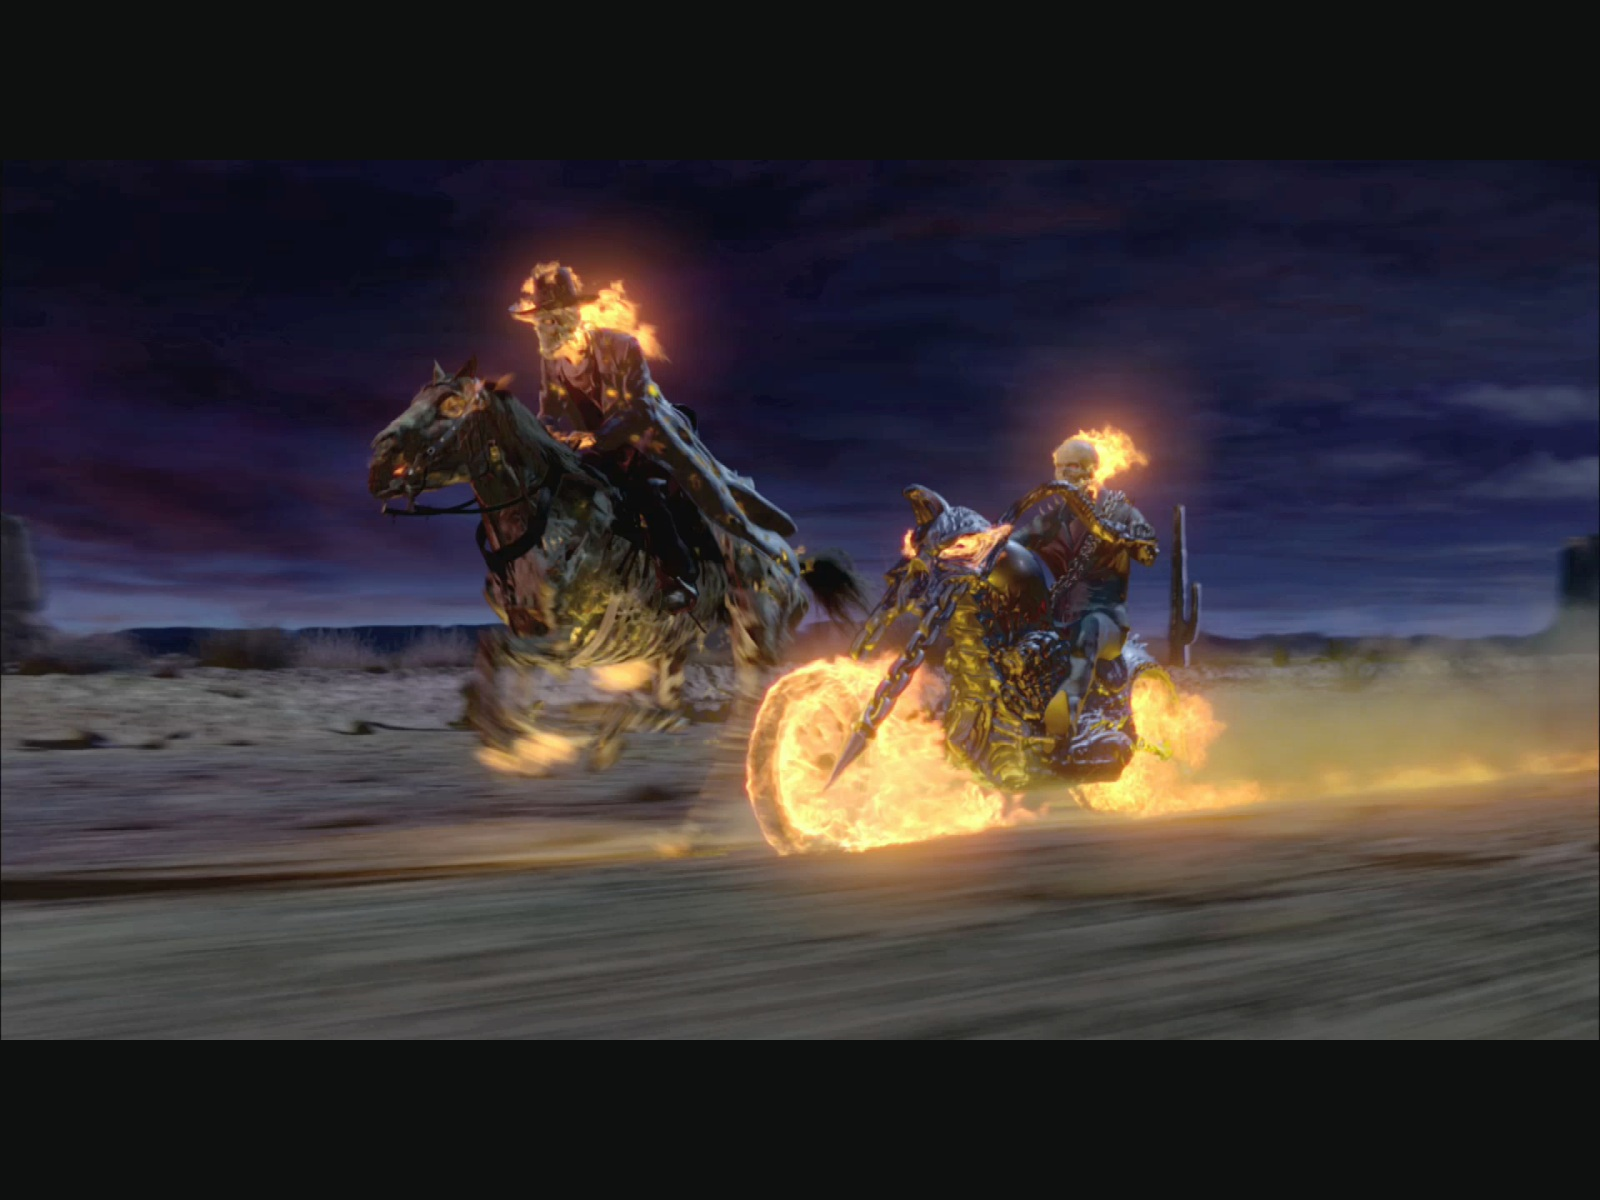 ghost rider hd wallpapers,ghost rider wallpapers pictures free 1600x1200